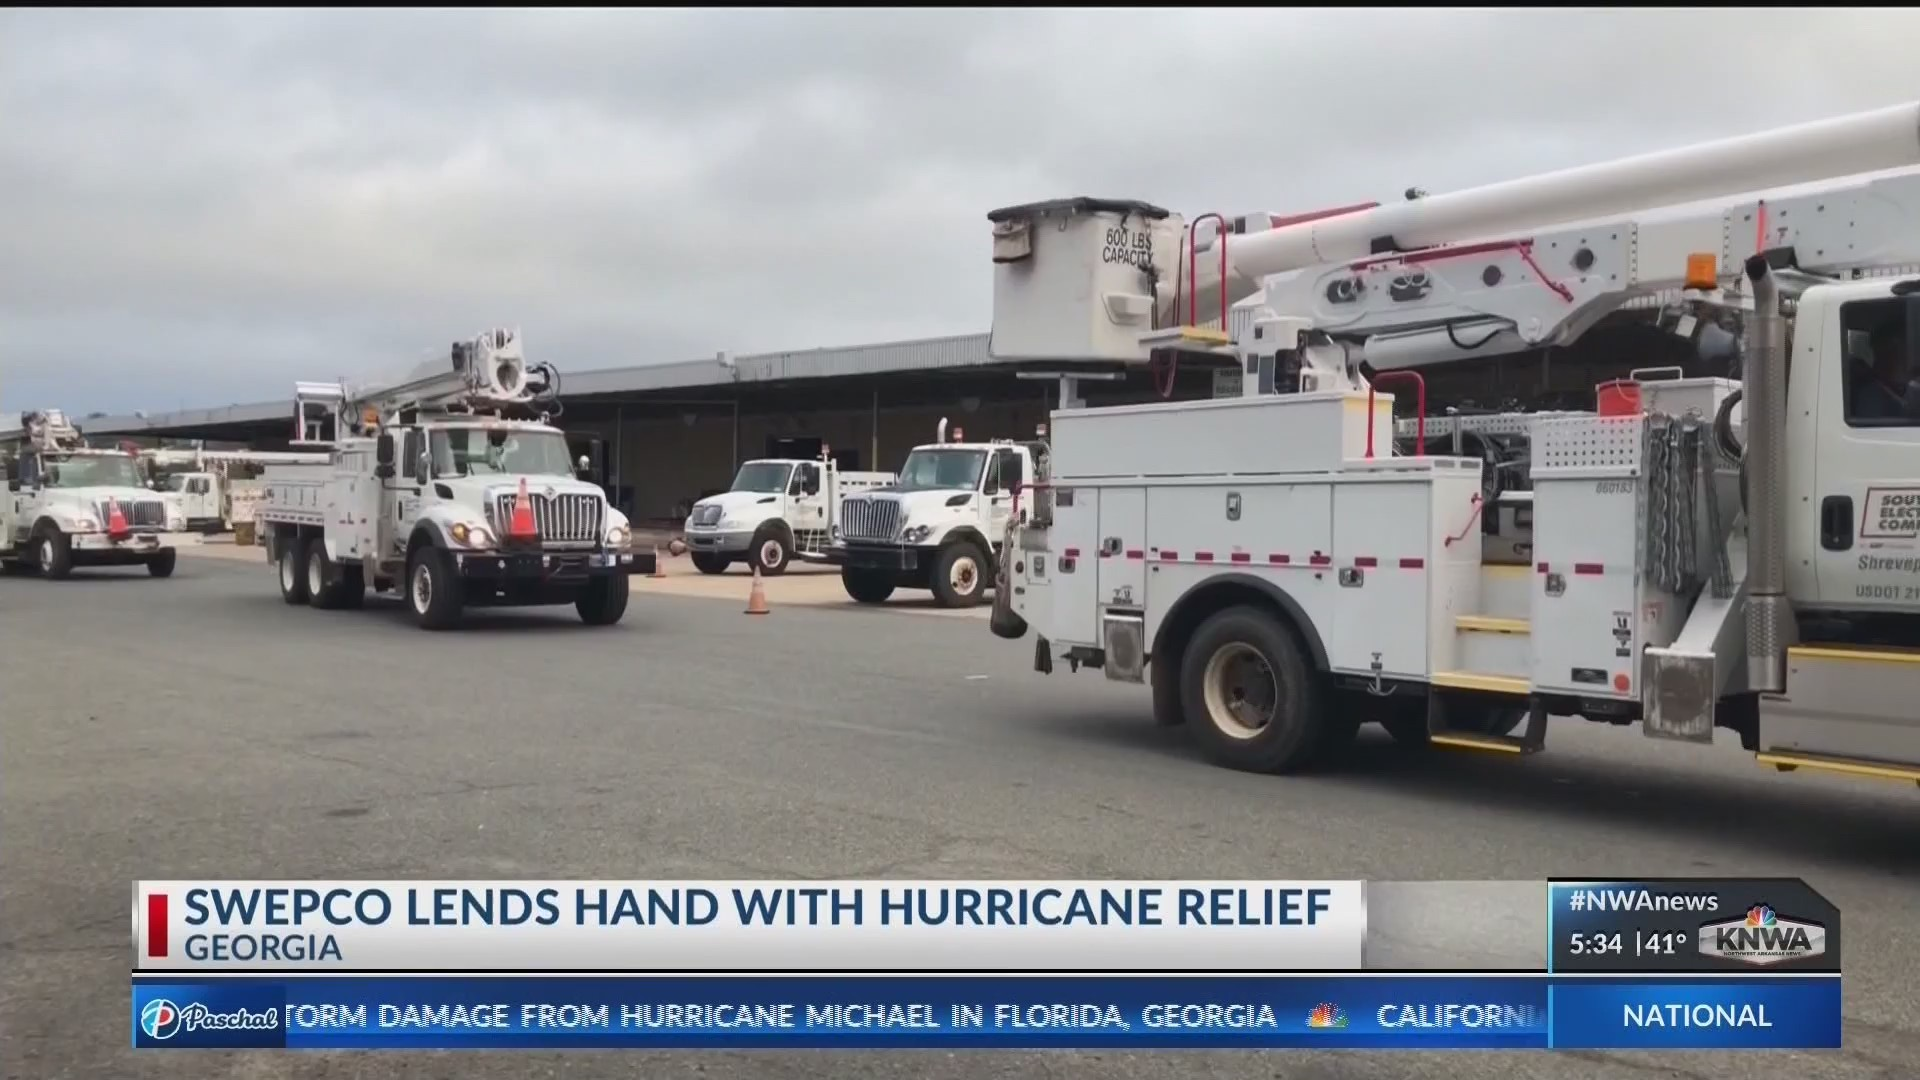 Local_Power_Company_Helps_Those_Affected_0_20181016131038